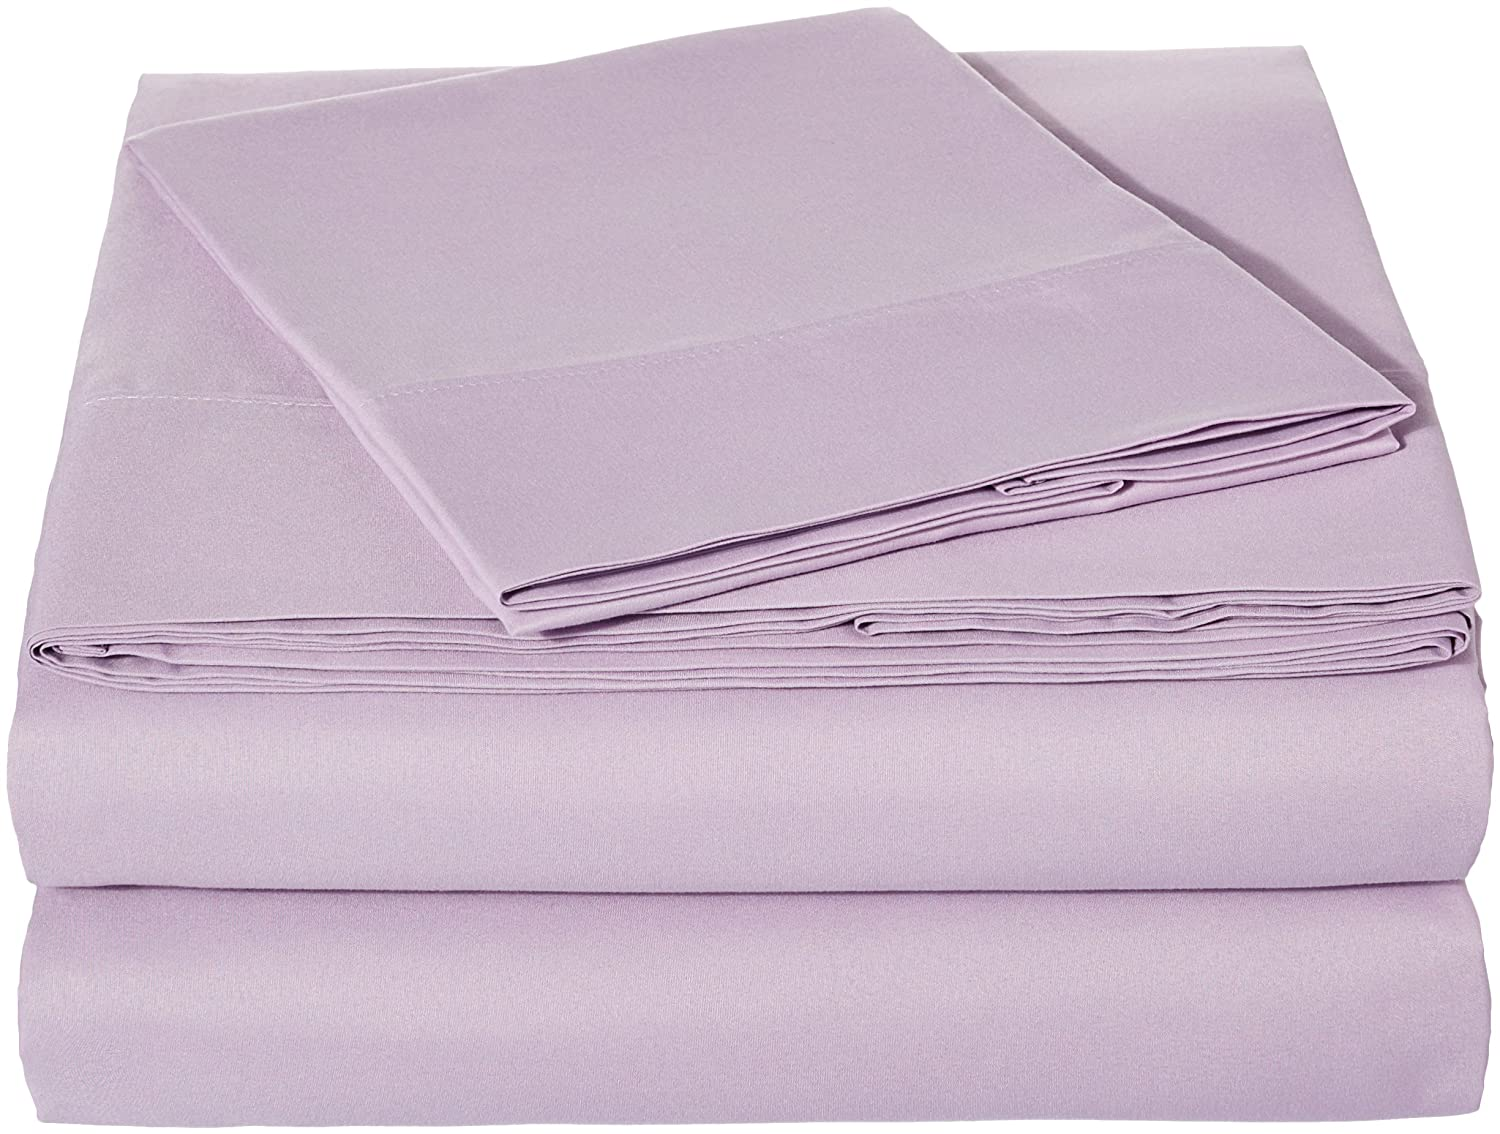 AmazonBasics Microfiber Sheet Set - Twin, Frosted Lavender